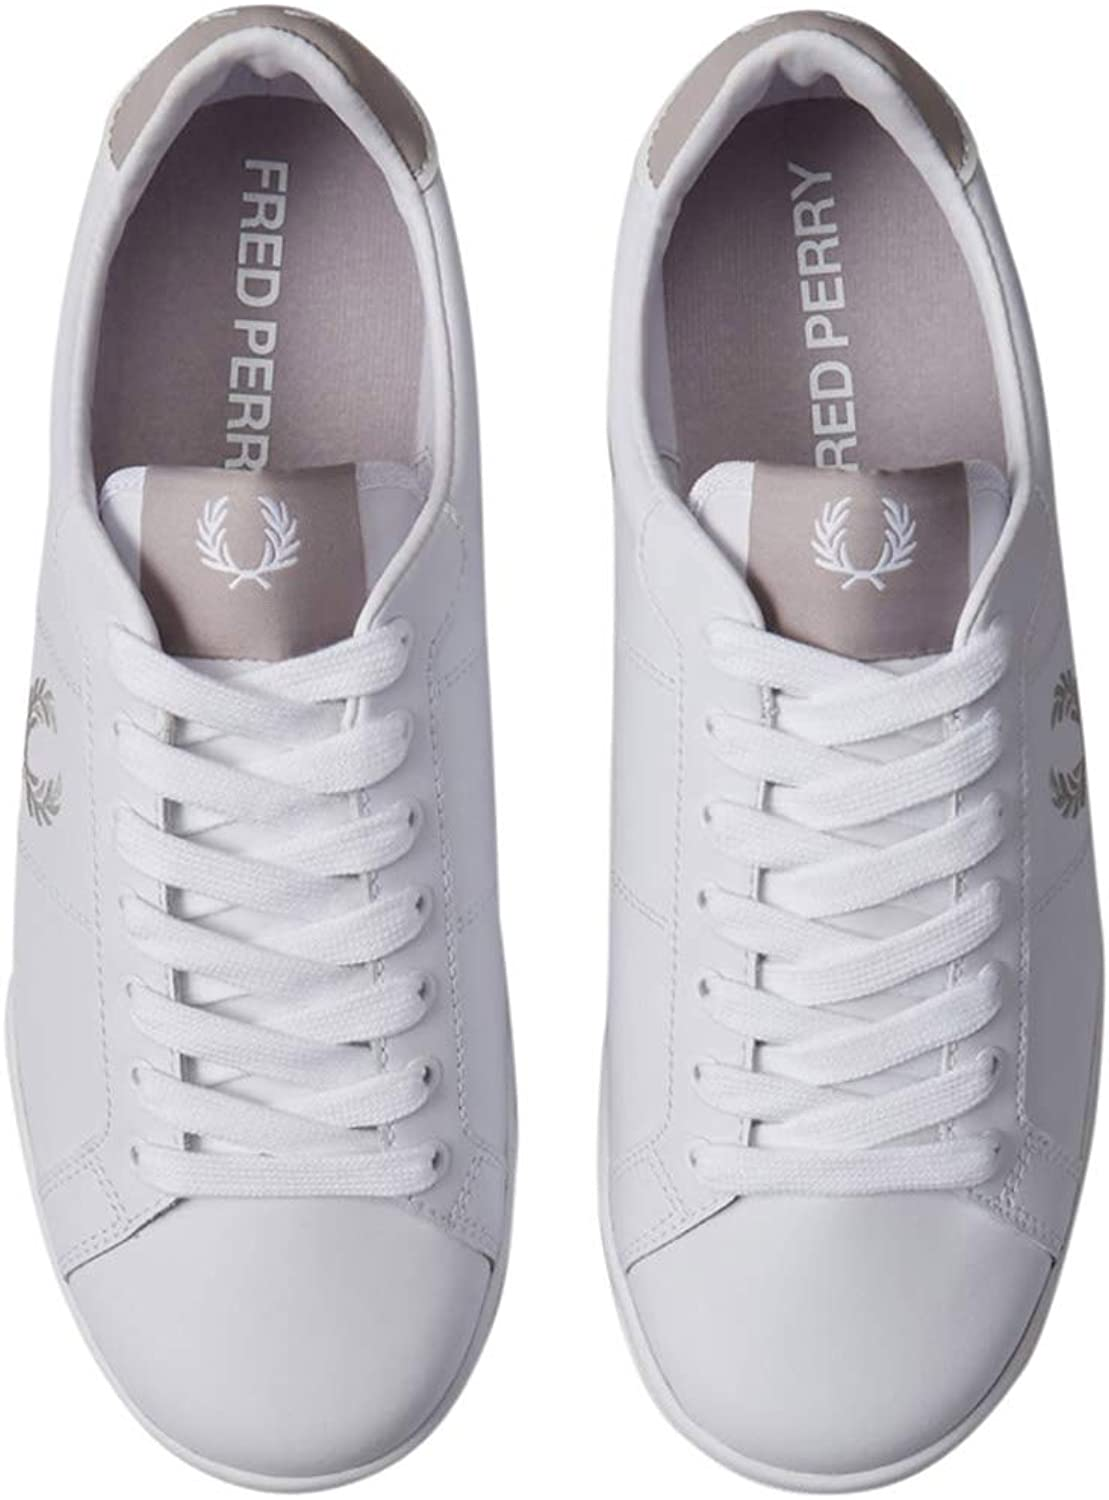 Fred Perry Homme B722 Basket offwhite Blanc - Gris clair